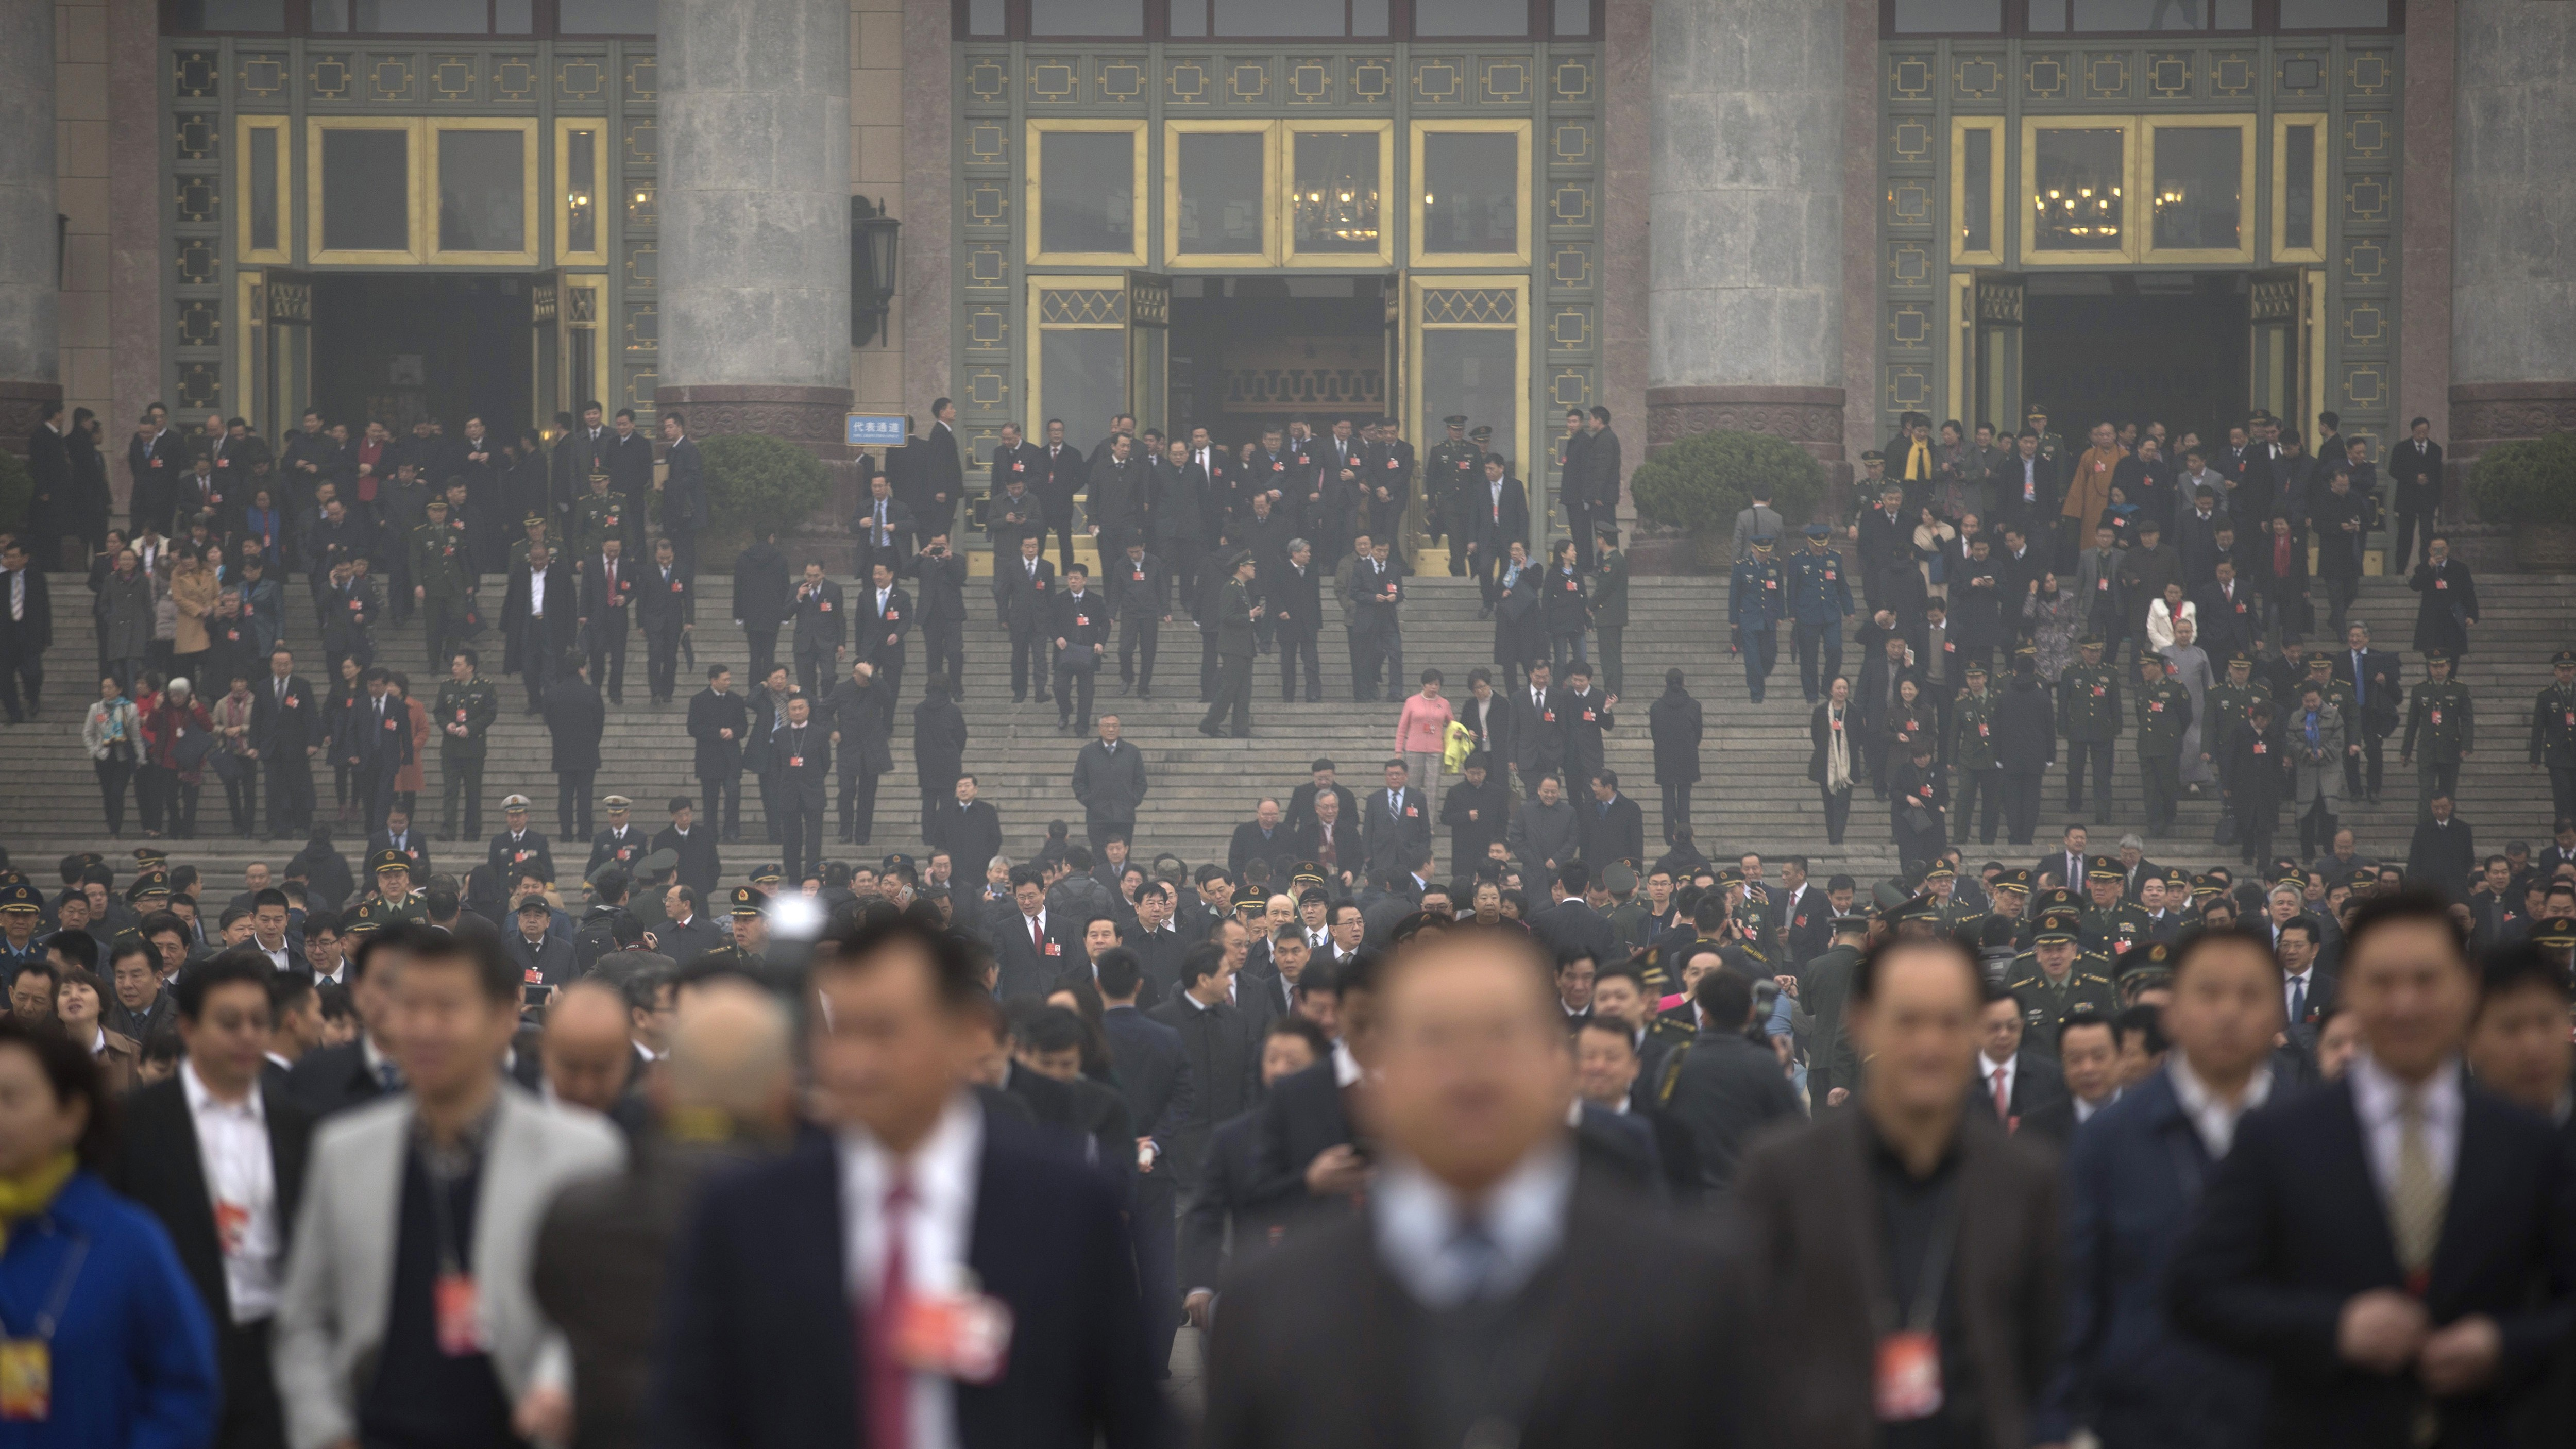 Delegates leave the Great Hall of the People in Beijing following a meeting ahead of Saturday's opening session of China's National People's Congress (NPC), Friday, March 4, 2016. The political conclave comes as China's leaders are being tested by new challenges including an economy that has slowed to a 25-year low, global uncertainty over the country's tumultuous stock markets and currency movements, and tensions over the South China Sea. (AP Photo/Mark Schiefelbein)